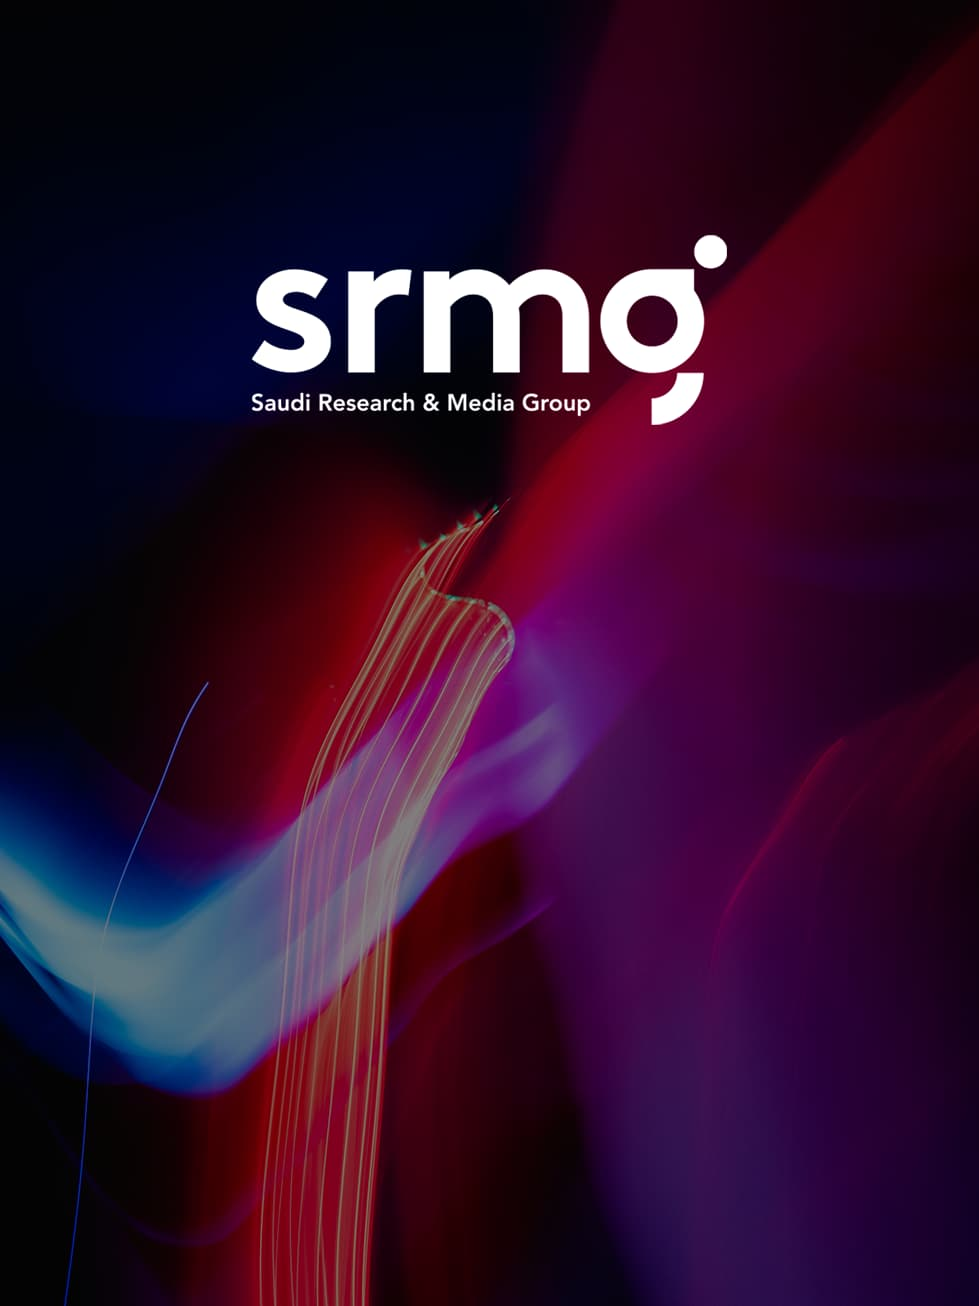 SRMG announces  growth strategy focusing on platform expansion and international partnerships across five new verticals